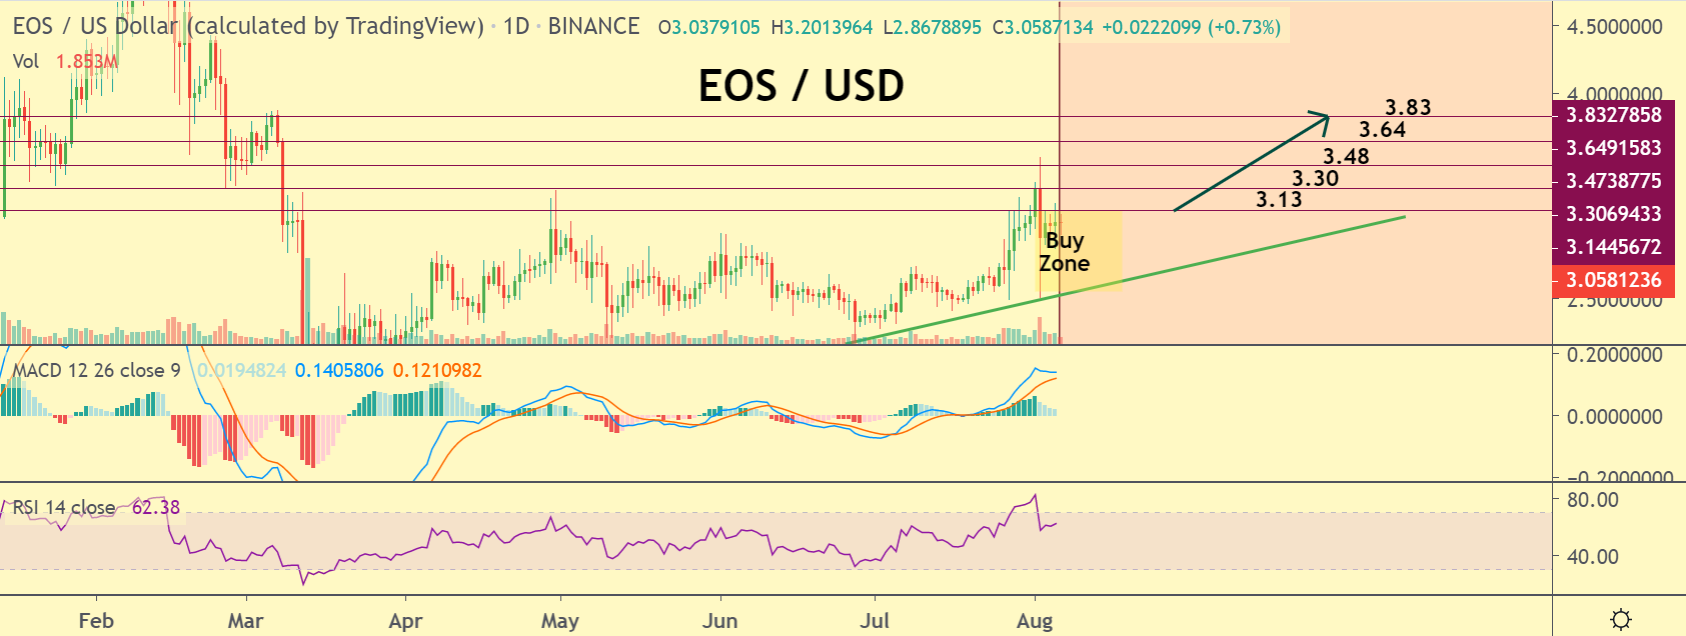 EOS price chart 2 - 6 August